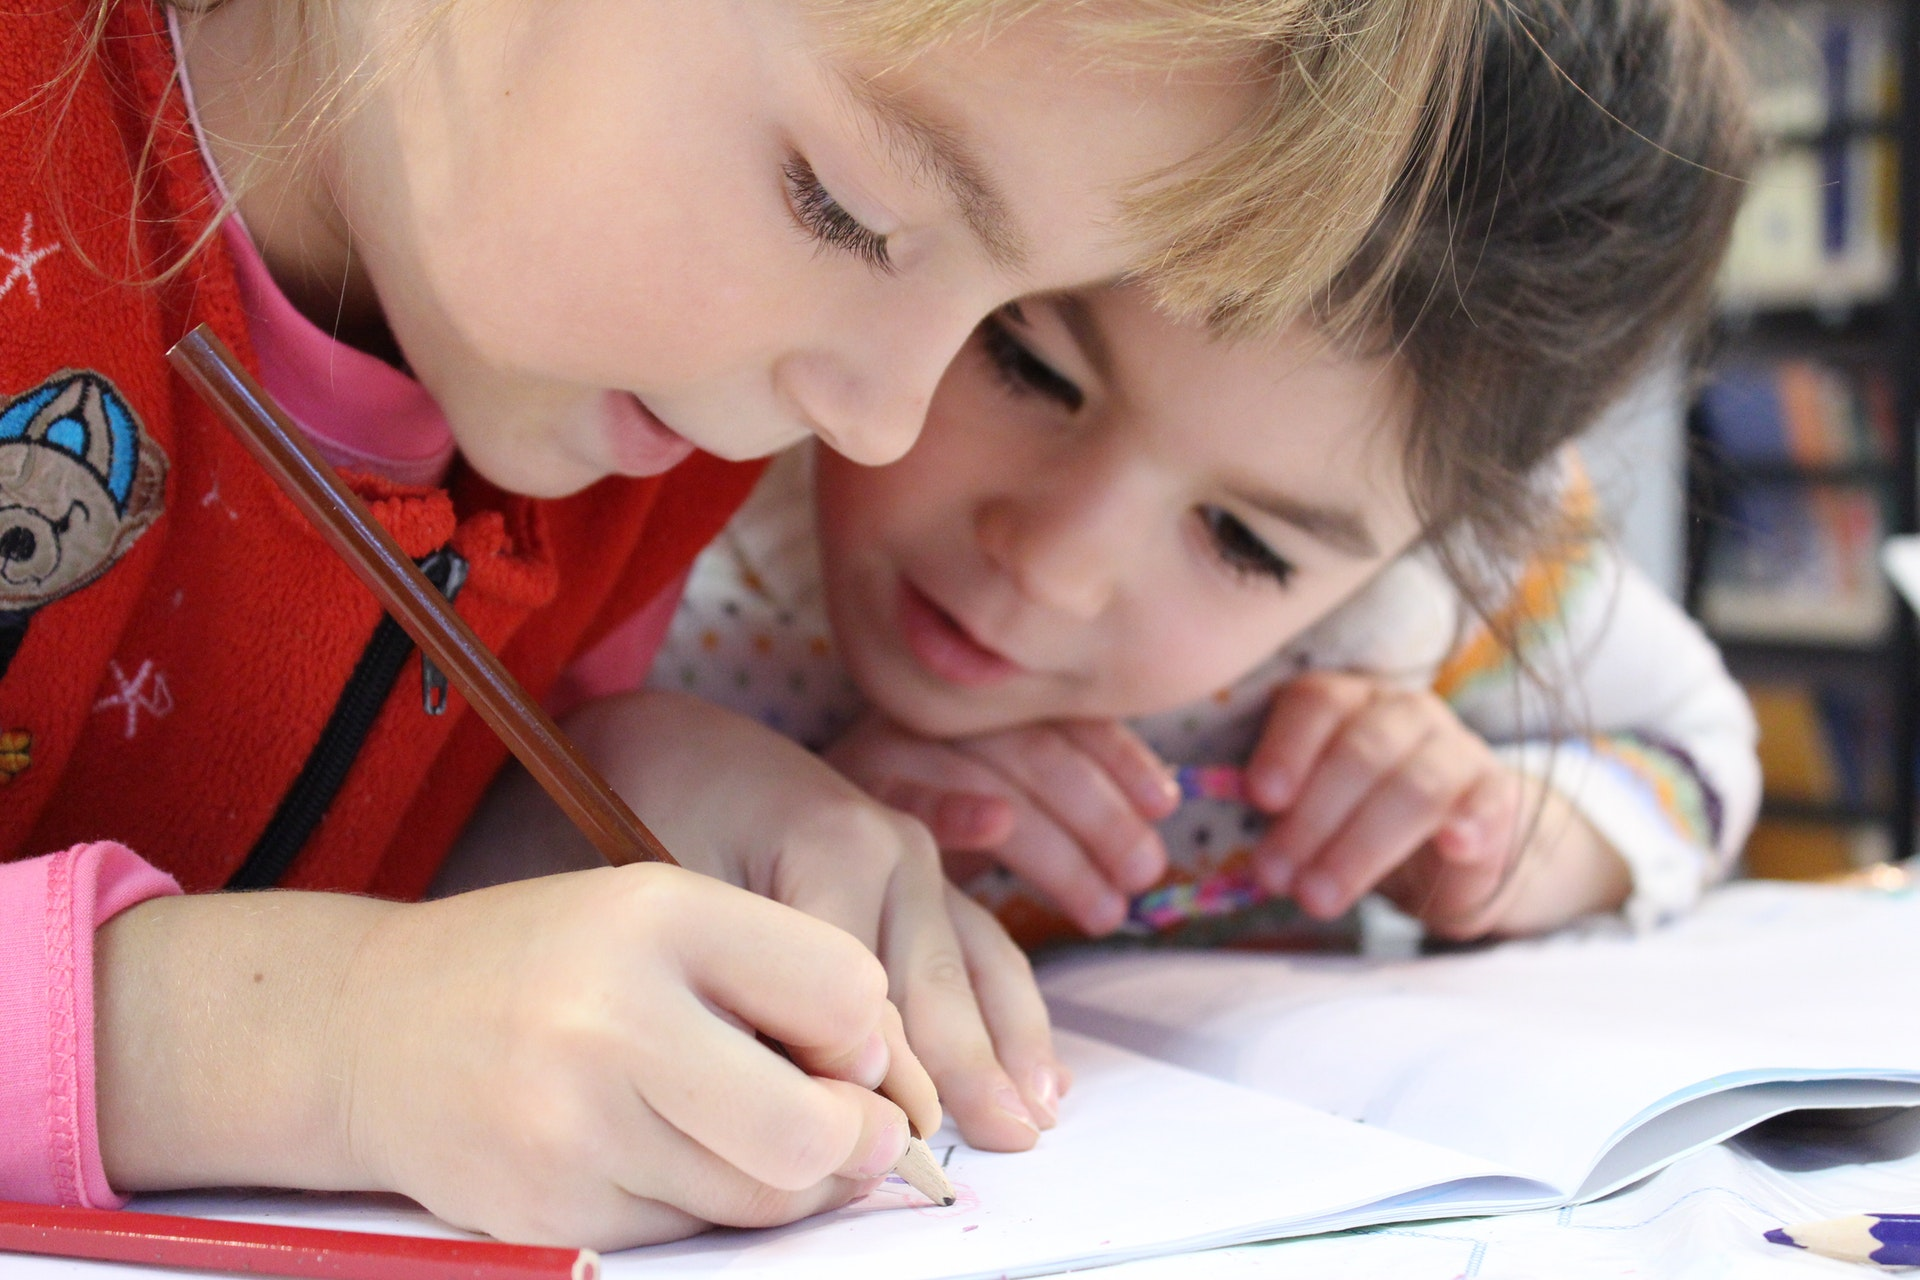 kids at school drawing together